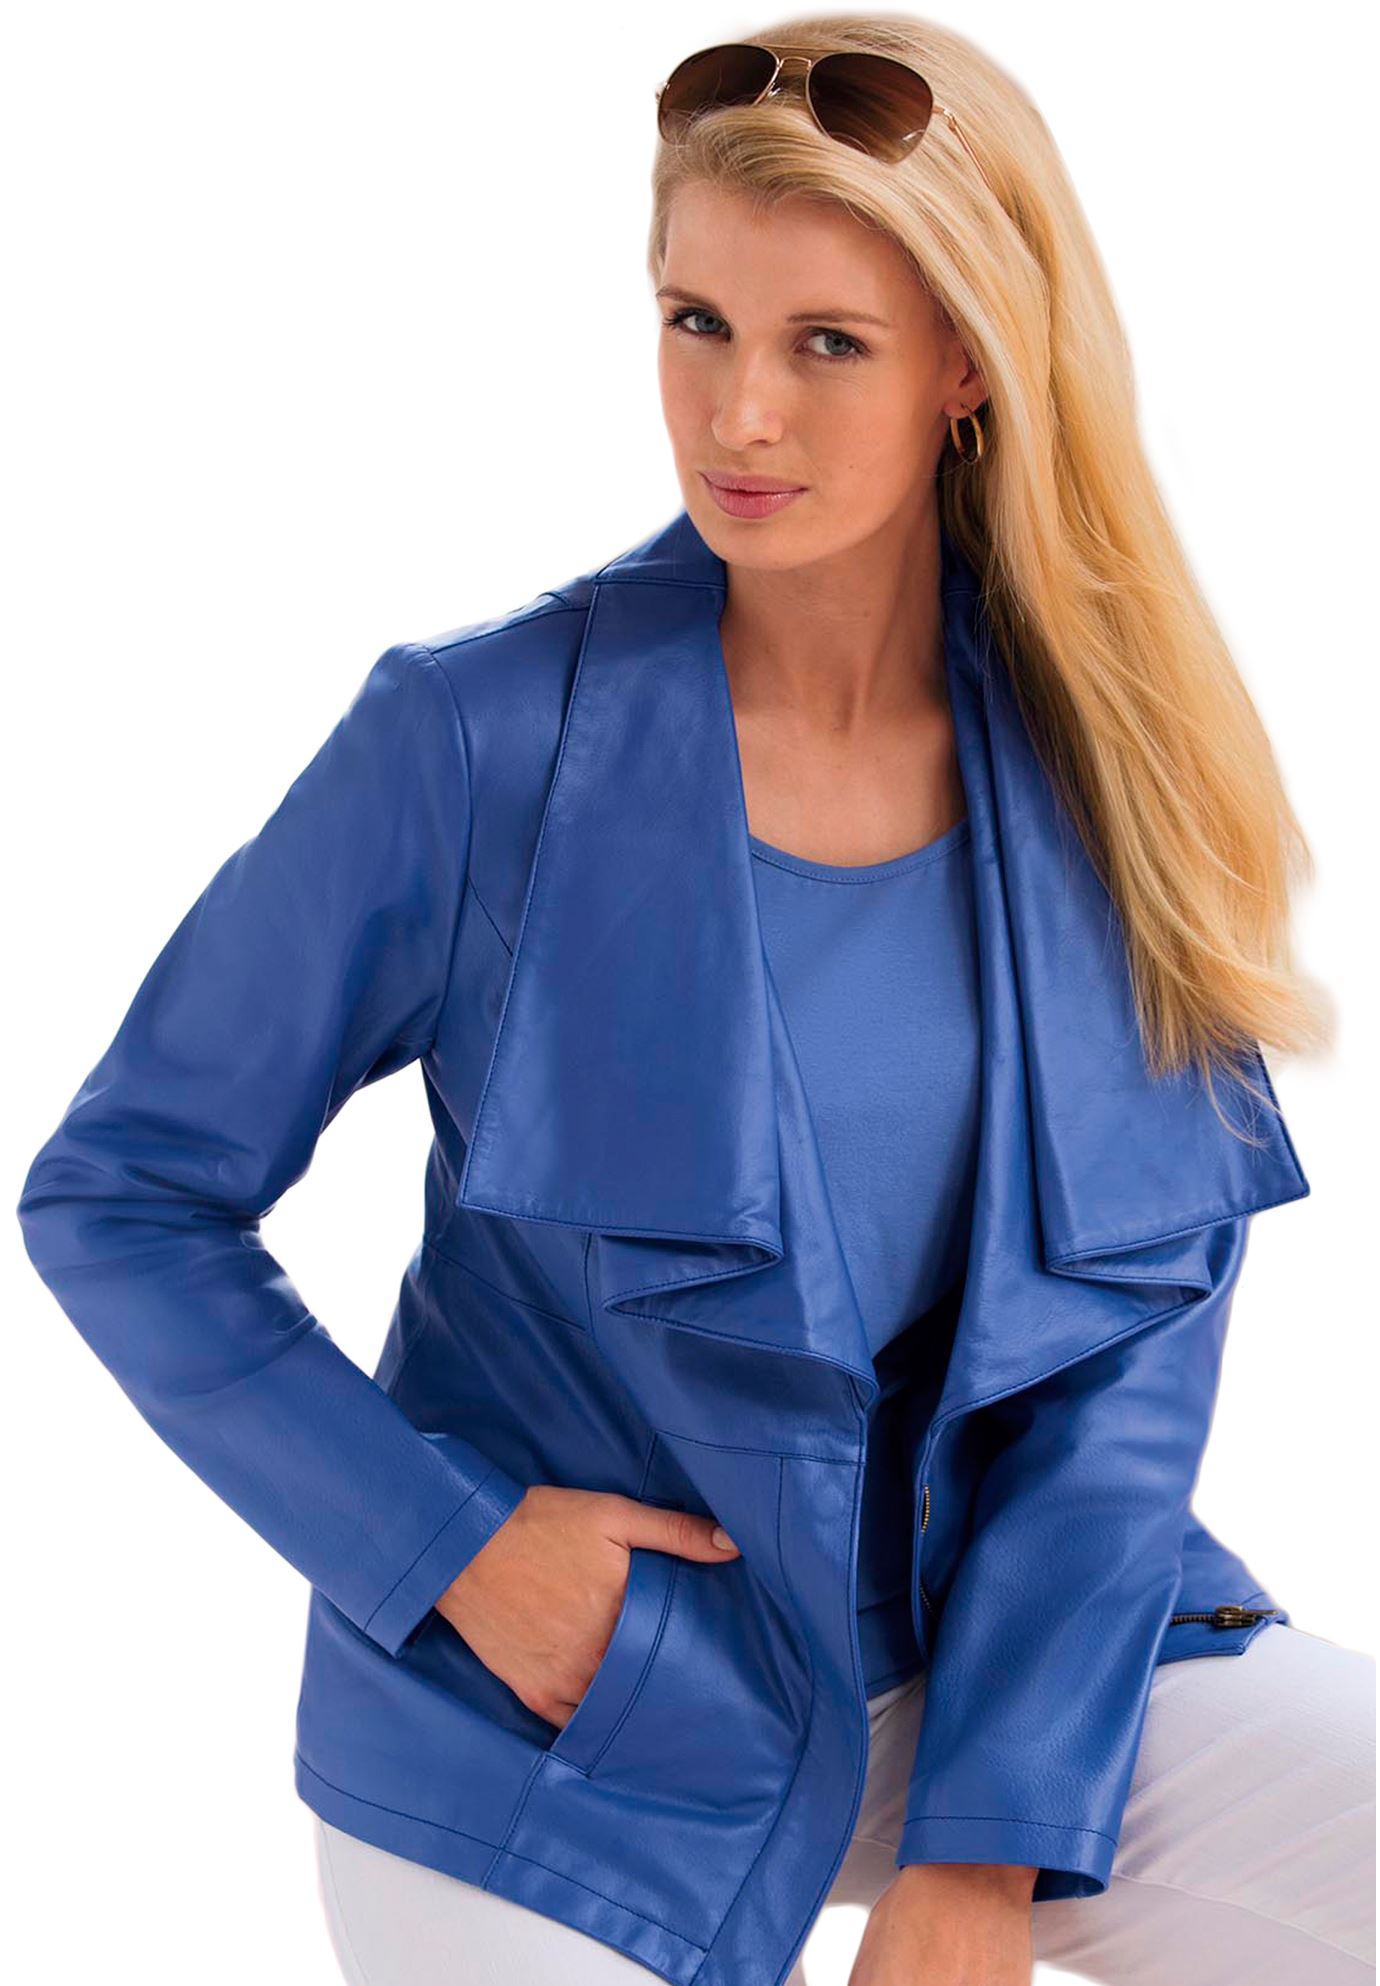 baea2deb8dc46 Leather Jacket With Ruffle Front